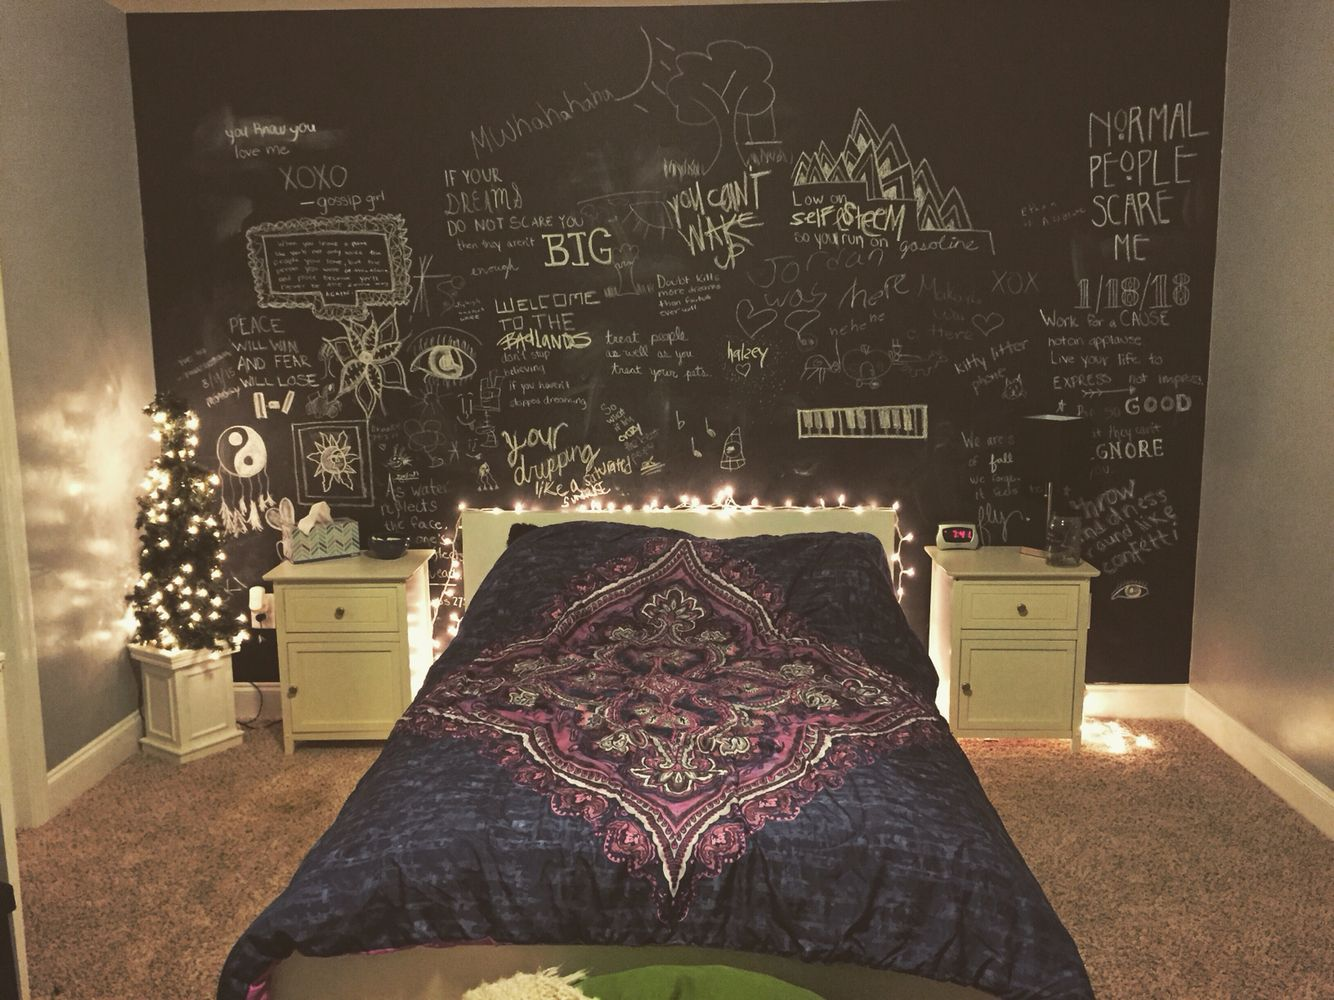 Bedroom ideas for girls tumblr - Bedroom Tumblr Chalkboard Wall Purple Blue White Ikea Fairy Lights Black Grey Teen Girl Chalkboard Pinterest Girls My Music And Chalk Board